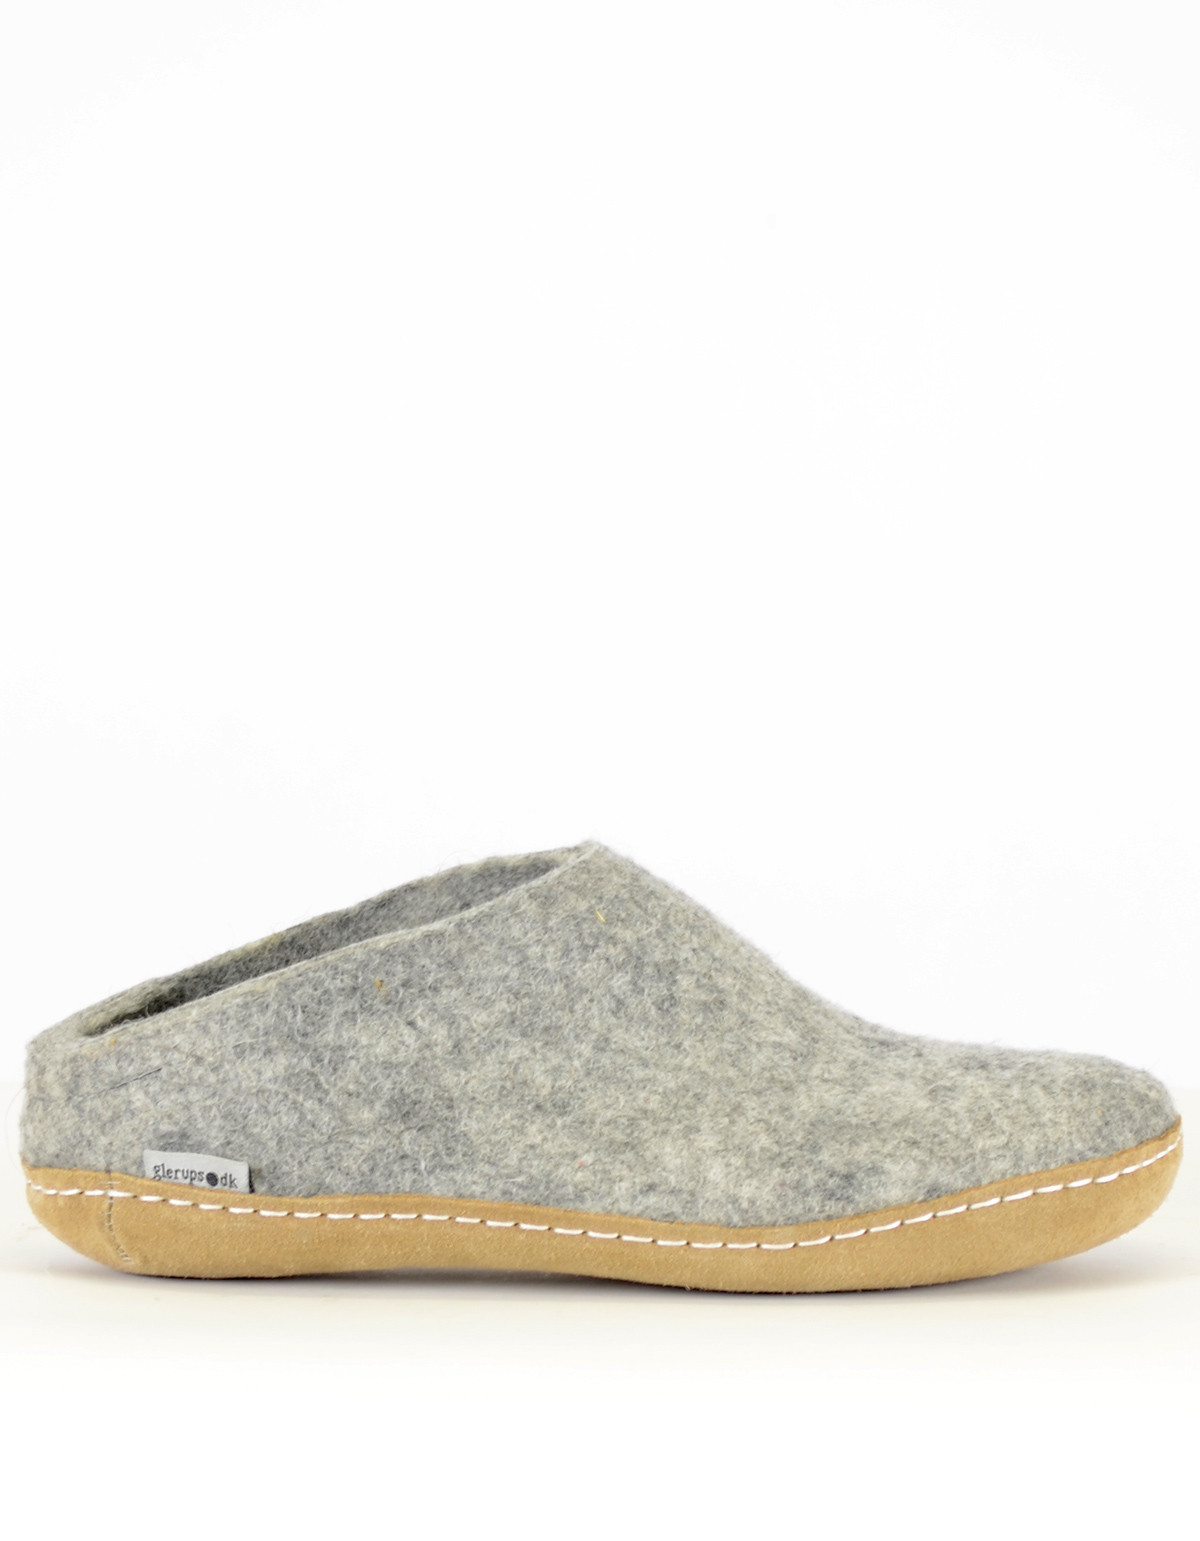 Luxury Glerups Women S Wool Slipper Leather sole Grey Leather sole Slippers Of Fresh 46 Models Leather sole Slippers